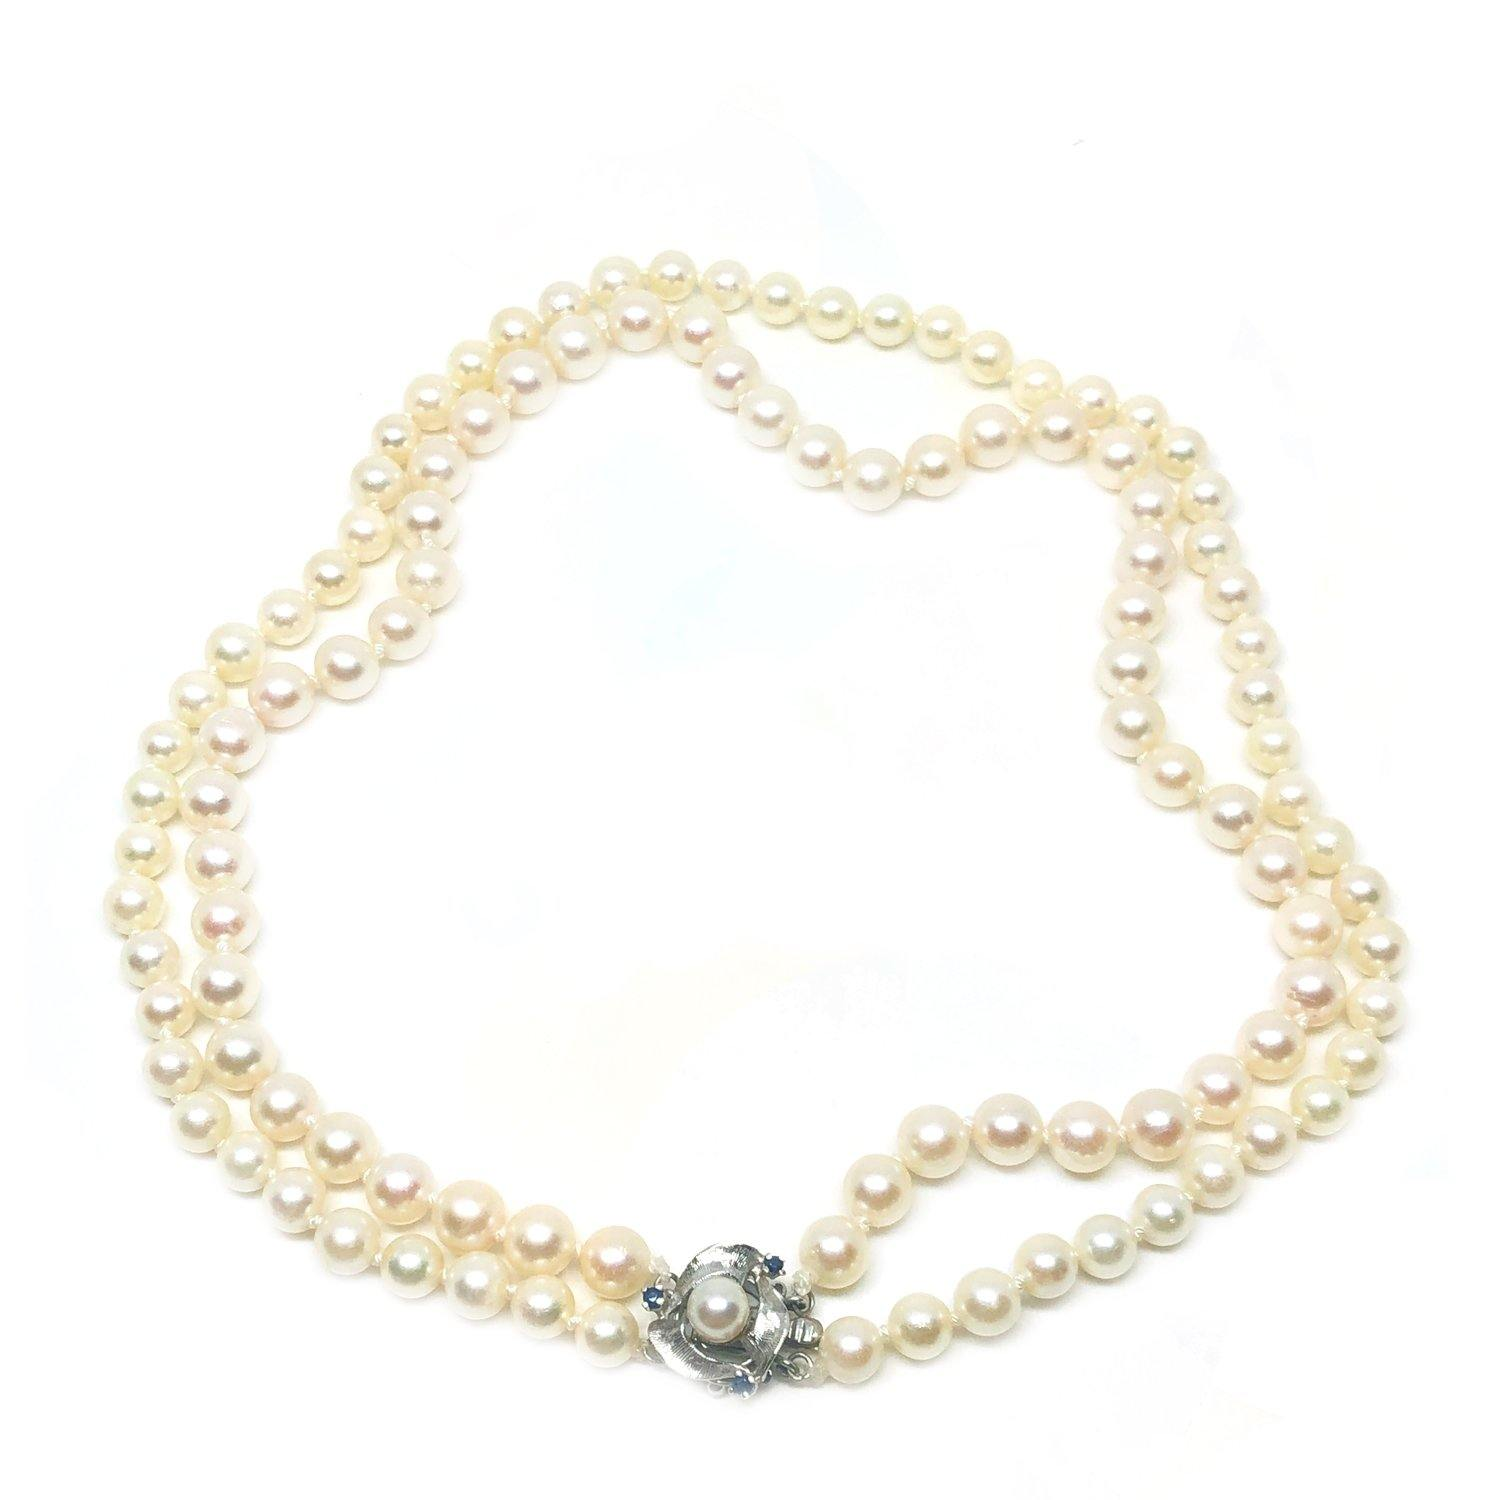 Double Strand Sapphire Japanese Saltwater Cultured Akoya Pearl Necklace - 14K White Gold 16 & 16.50 Inch